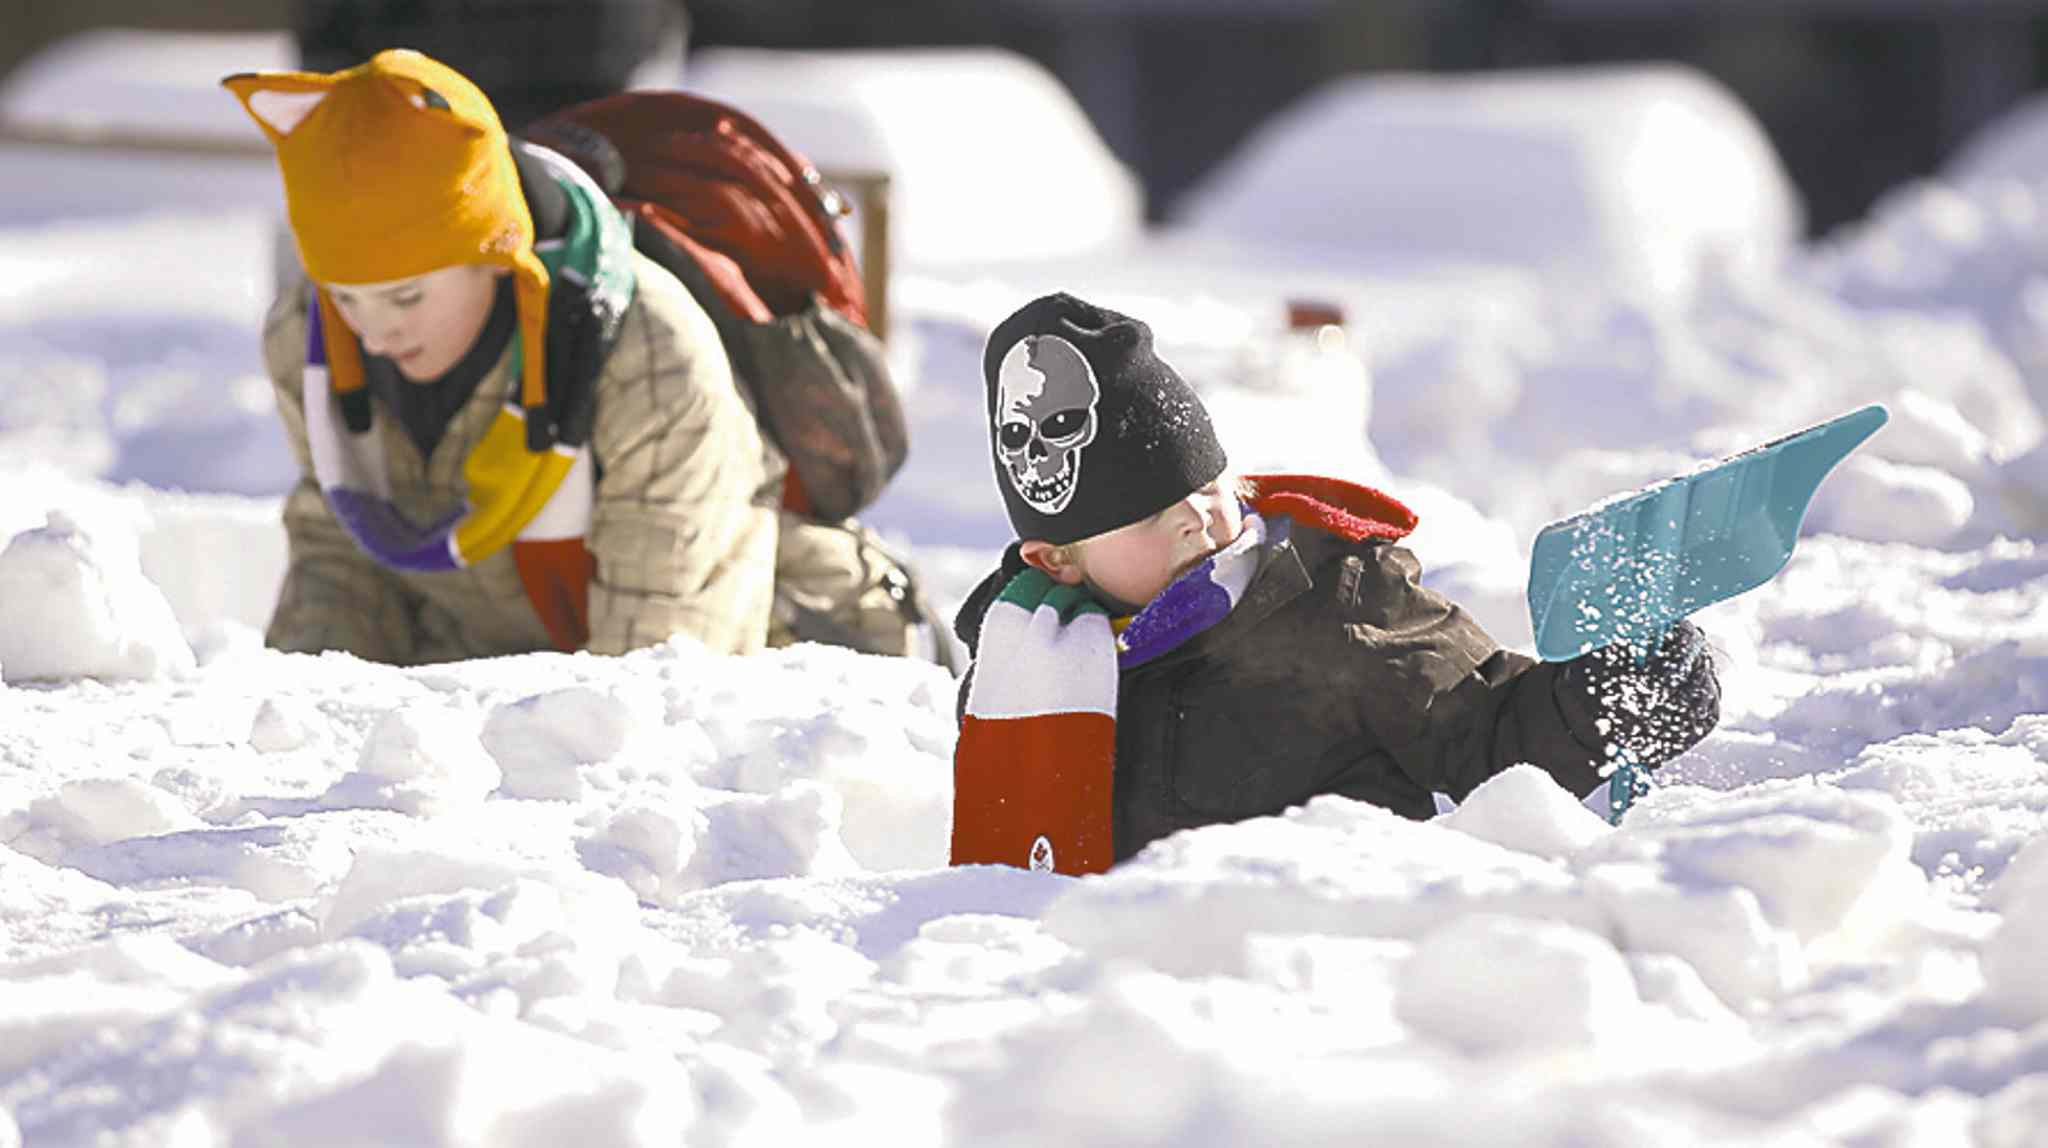 TREVOR HAGAN / WINNIPEG FREE PRESS Brothers, Ethan, 12, and Graham Wild, 5, were among those helping to construct the maze out of snow blocks at Millennium Library Park.